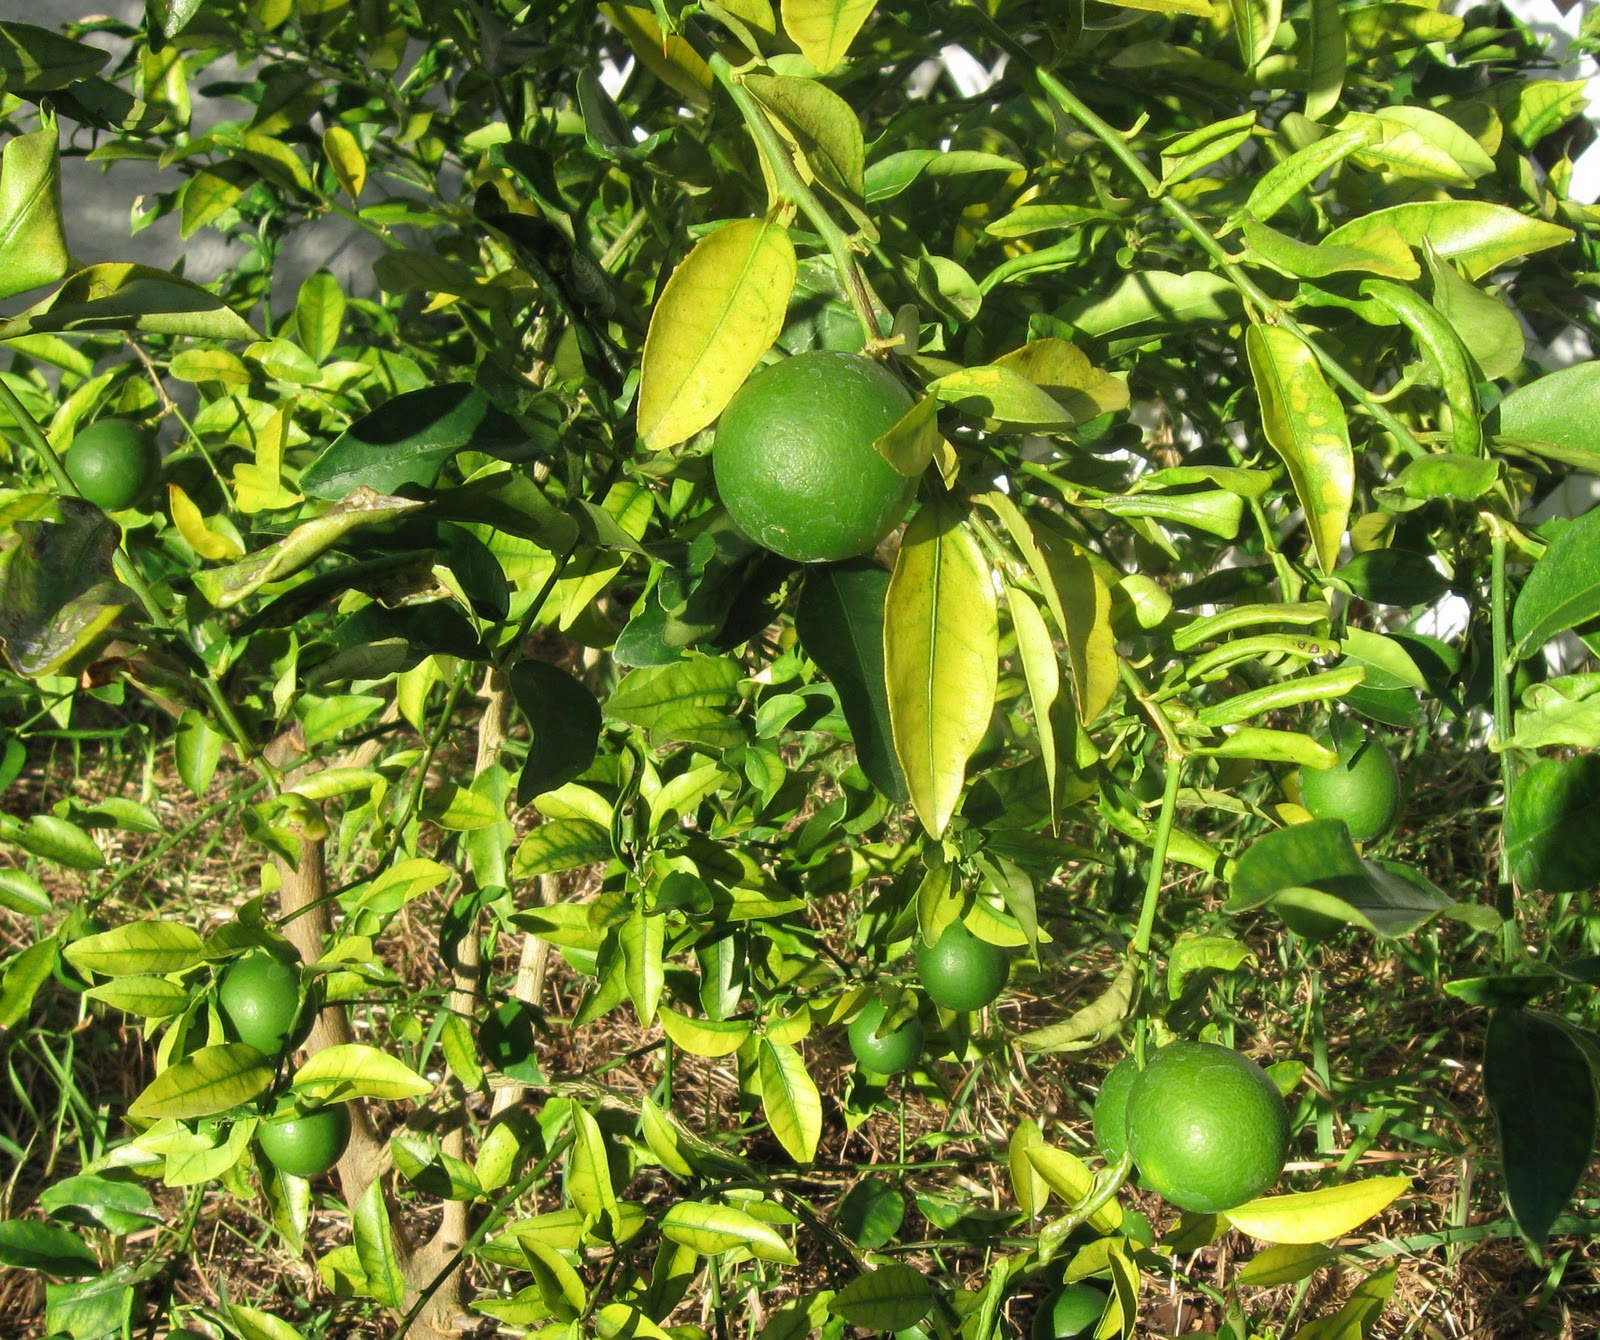 The Soap Artist: Tropical fruit trees